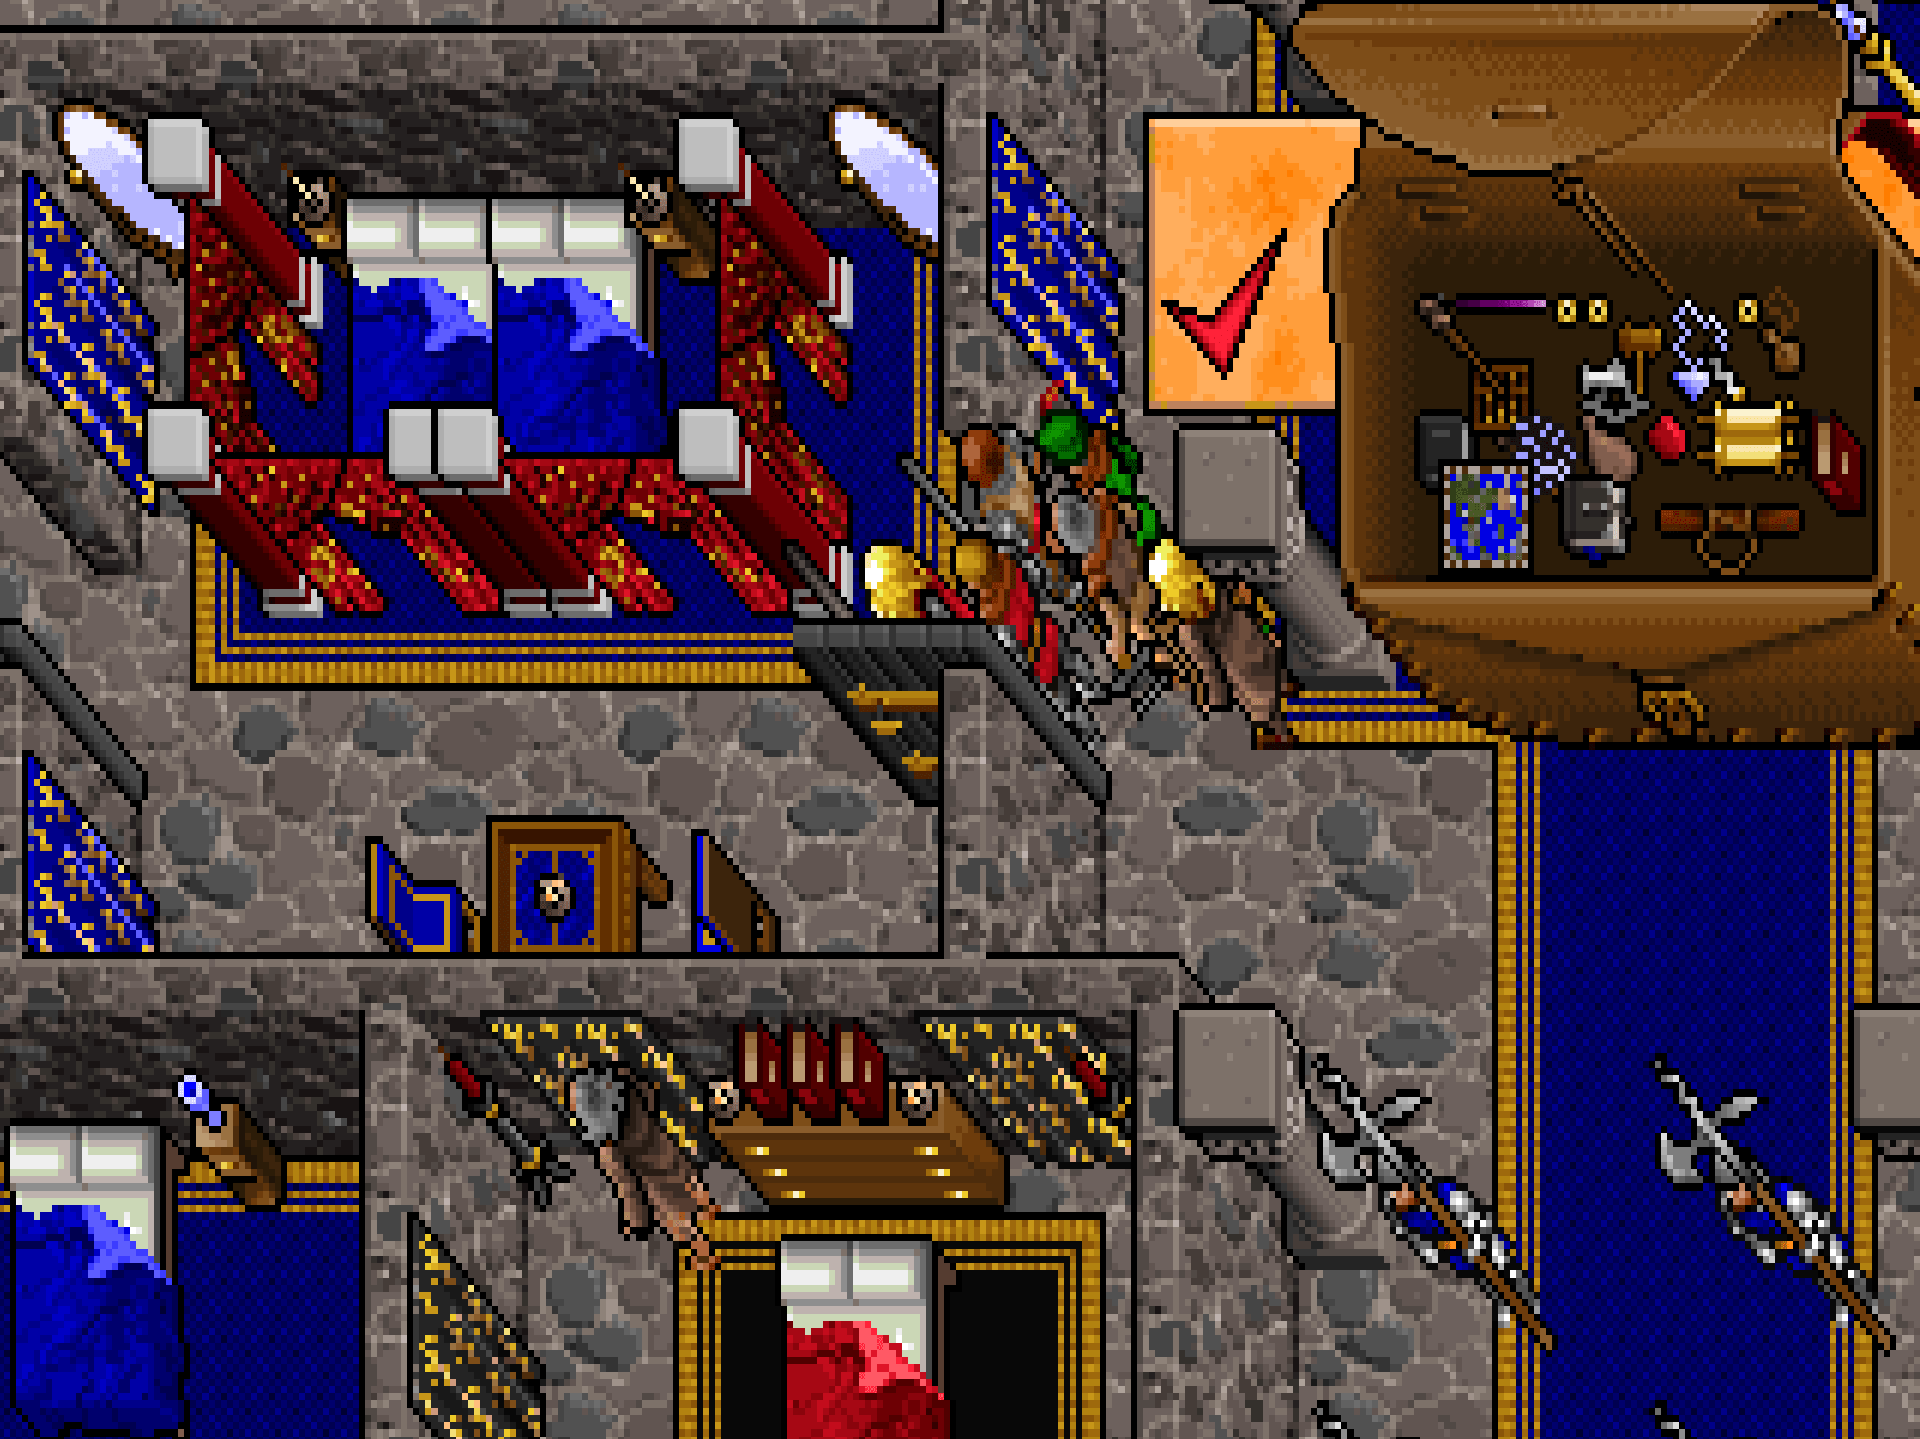 Boxes and all manner of other wonders in Ultima VII.